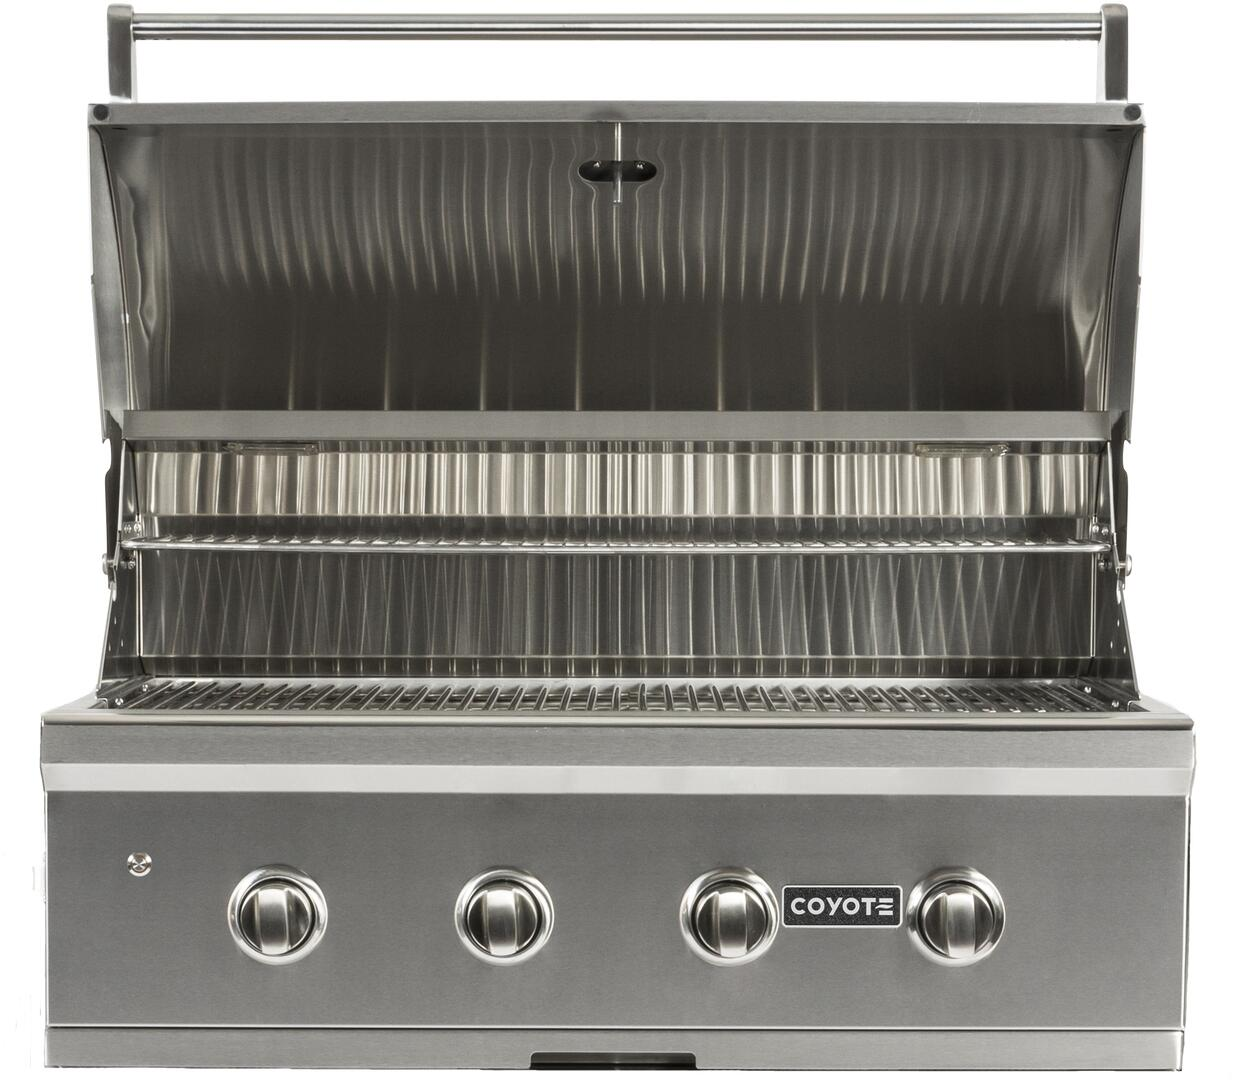 Coyote ccx4ng 36 inch built in grill in stainless steel for Coyote outdoor grill reviews